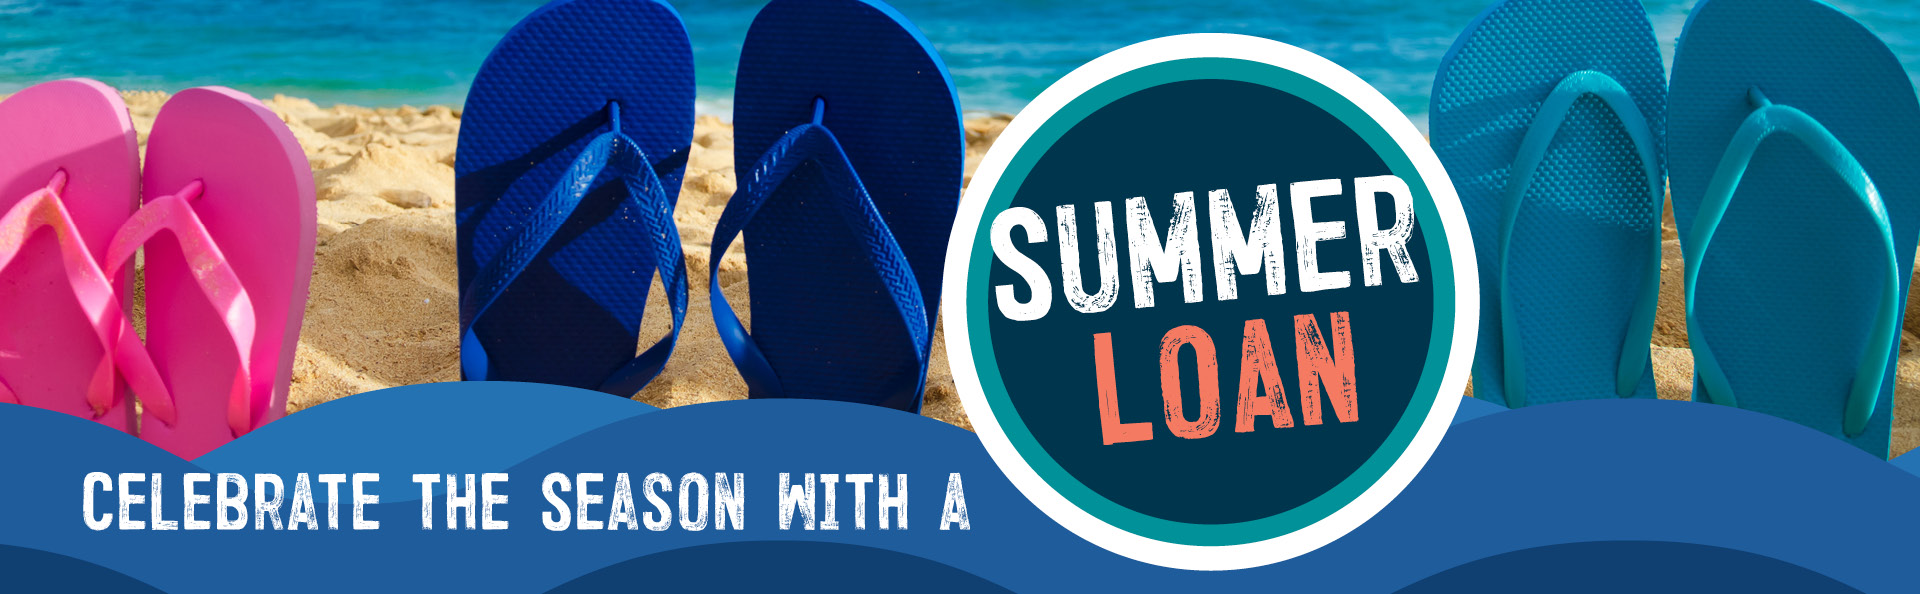 SummerLoans Available.